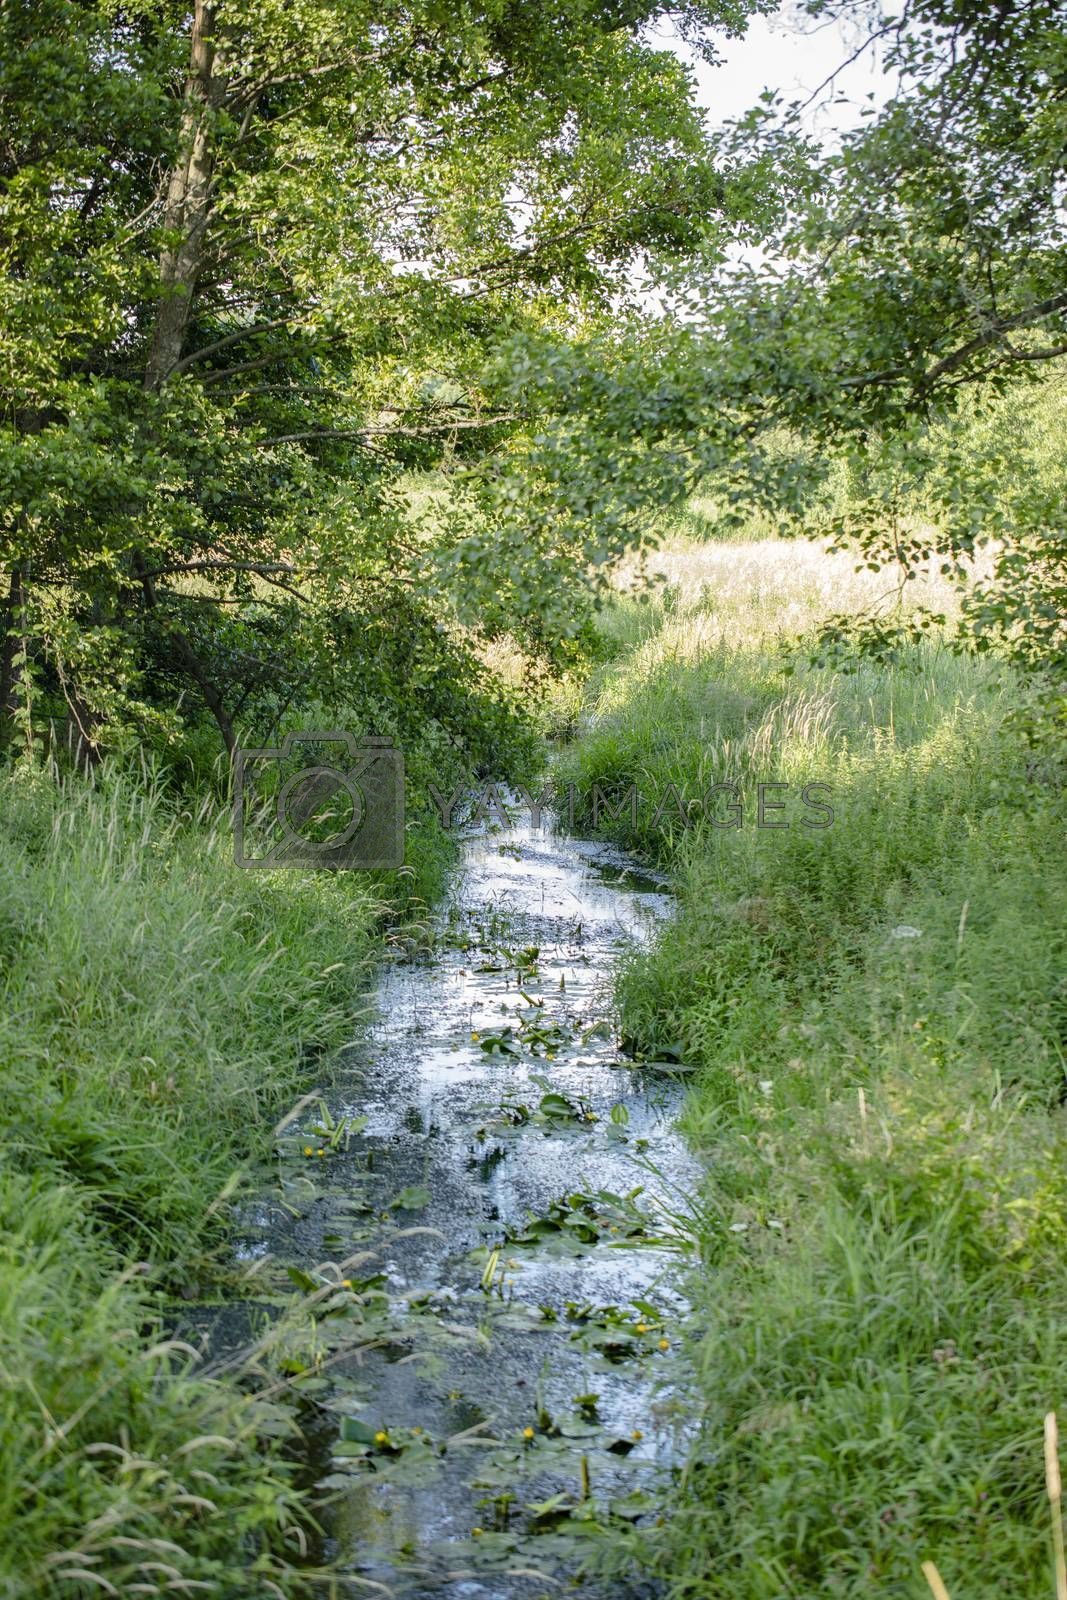 river bed covered with grasses and bushes